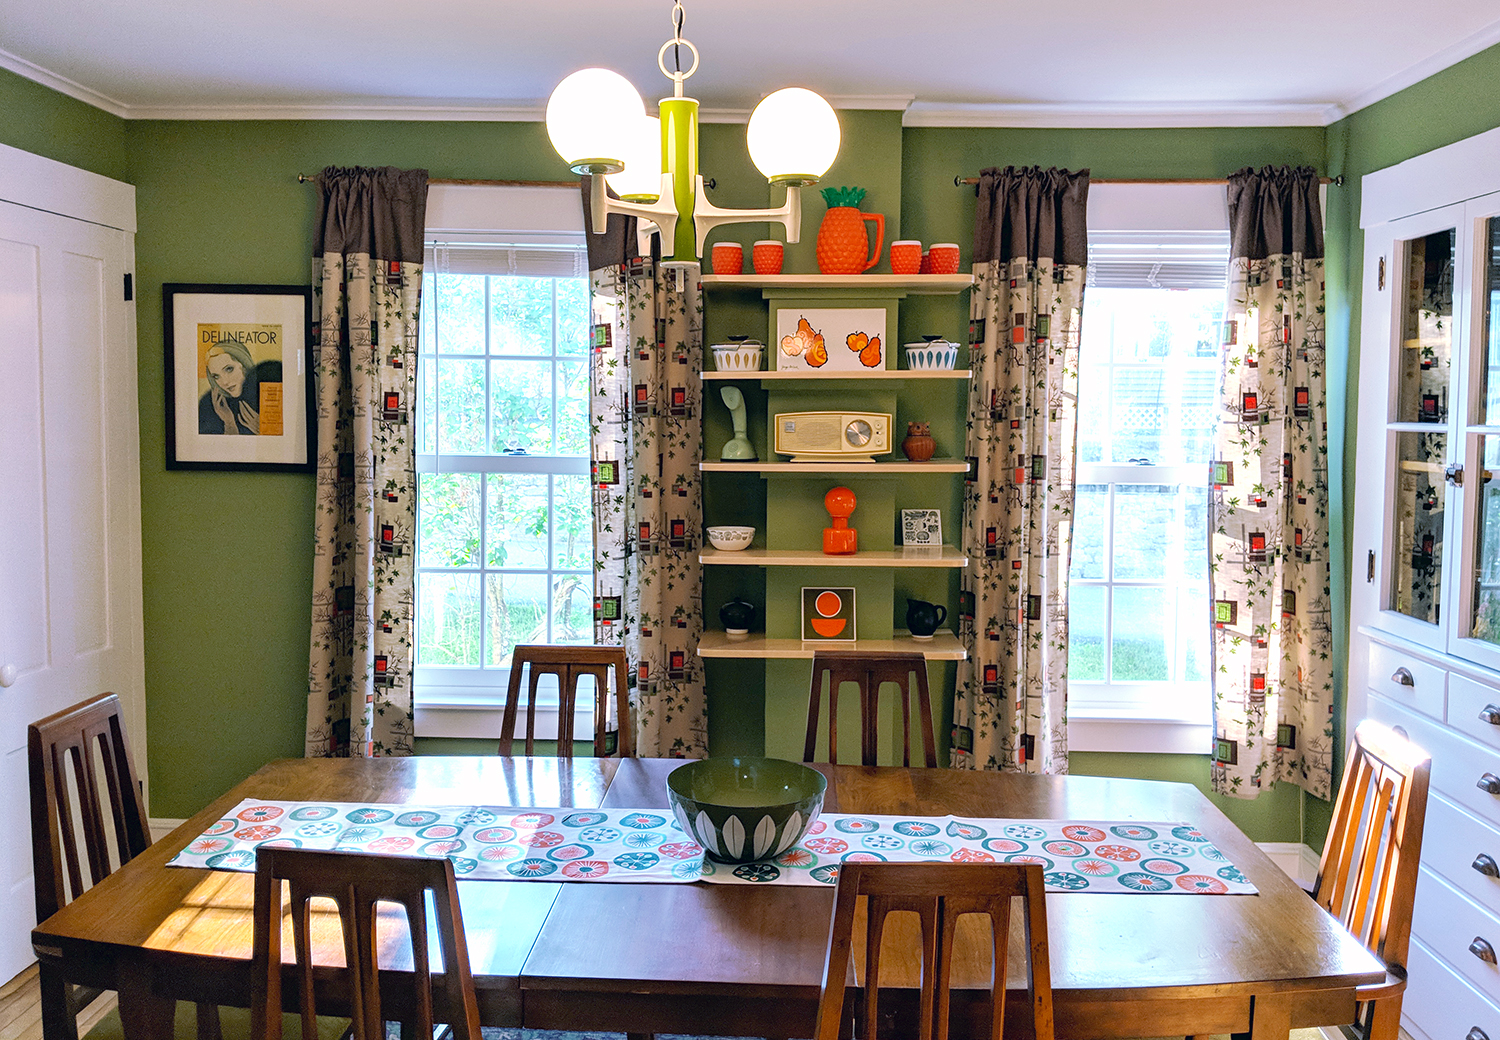 """Our final dining room and vintage mid-century table and chairs found at """"Just L"""" in Littleton, NH."""